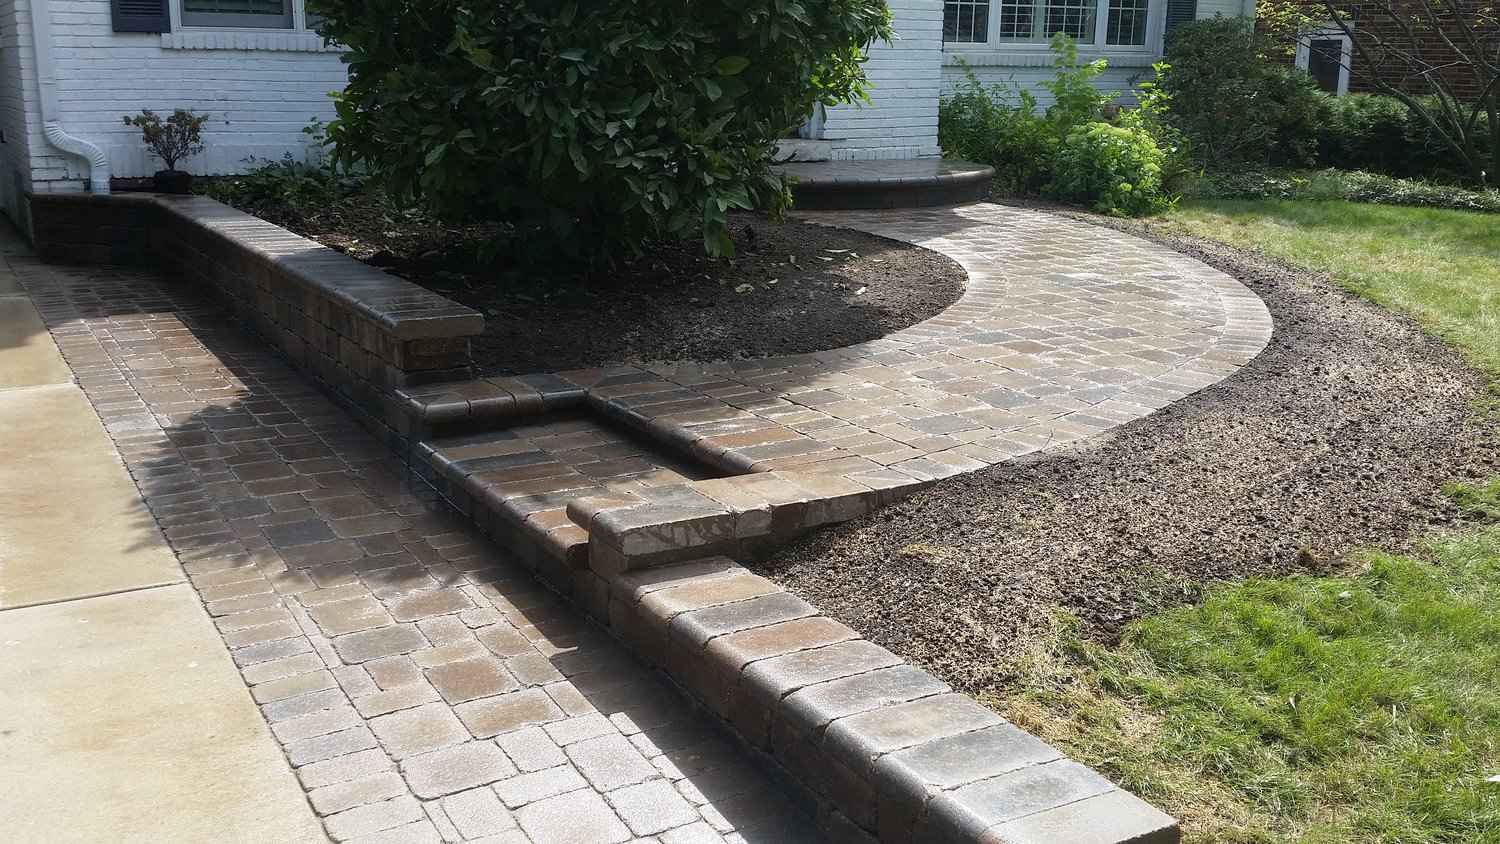 Richardson-Garland TX Professional Landscapers & Outdoor Living Designs-We offer Landscape Design, Outdoor Patios & Pergolas, Outdoor Living Spaces, Stonescapes, Residential & Commercial Landscaping, Irrigation Installation & Repairs, Drainage Systems, Landscape Lighting, Outdoor Living Spaces, Tree Service, Lawn Service, and more.